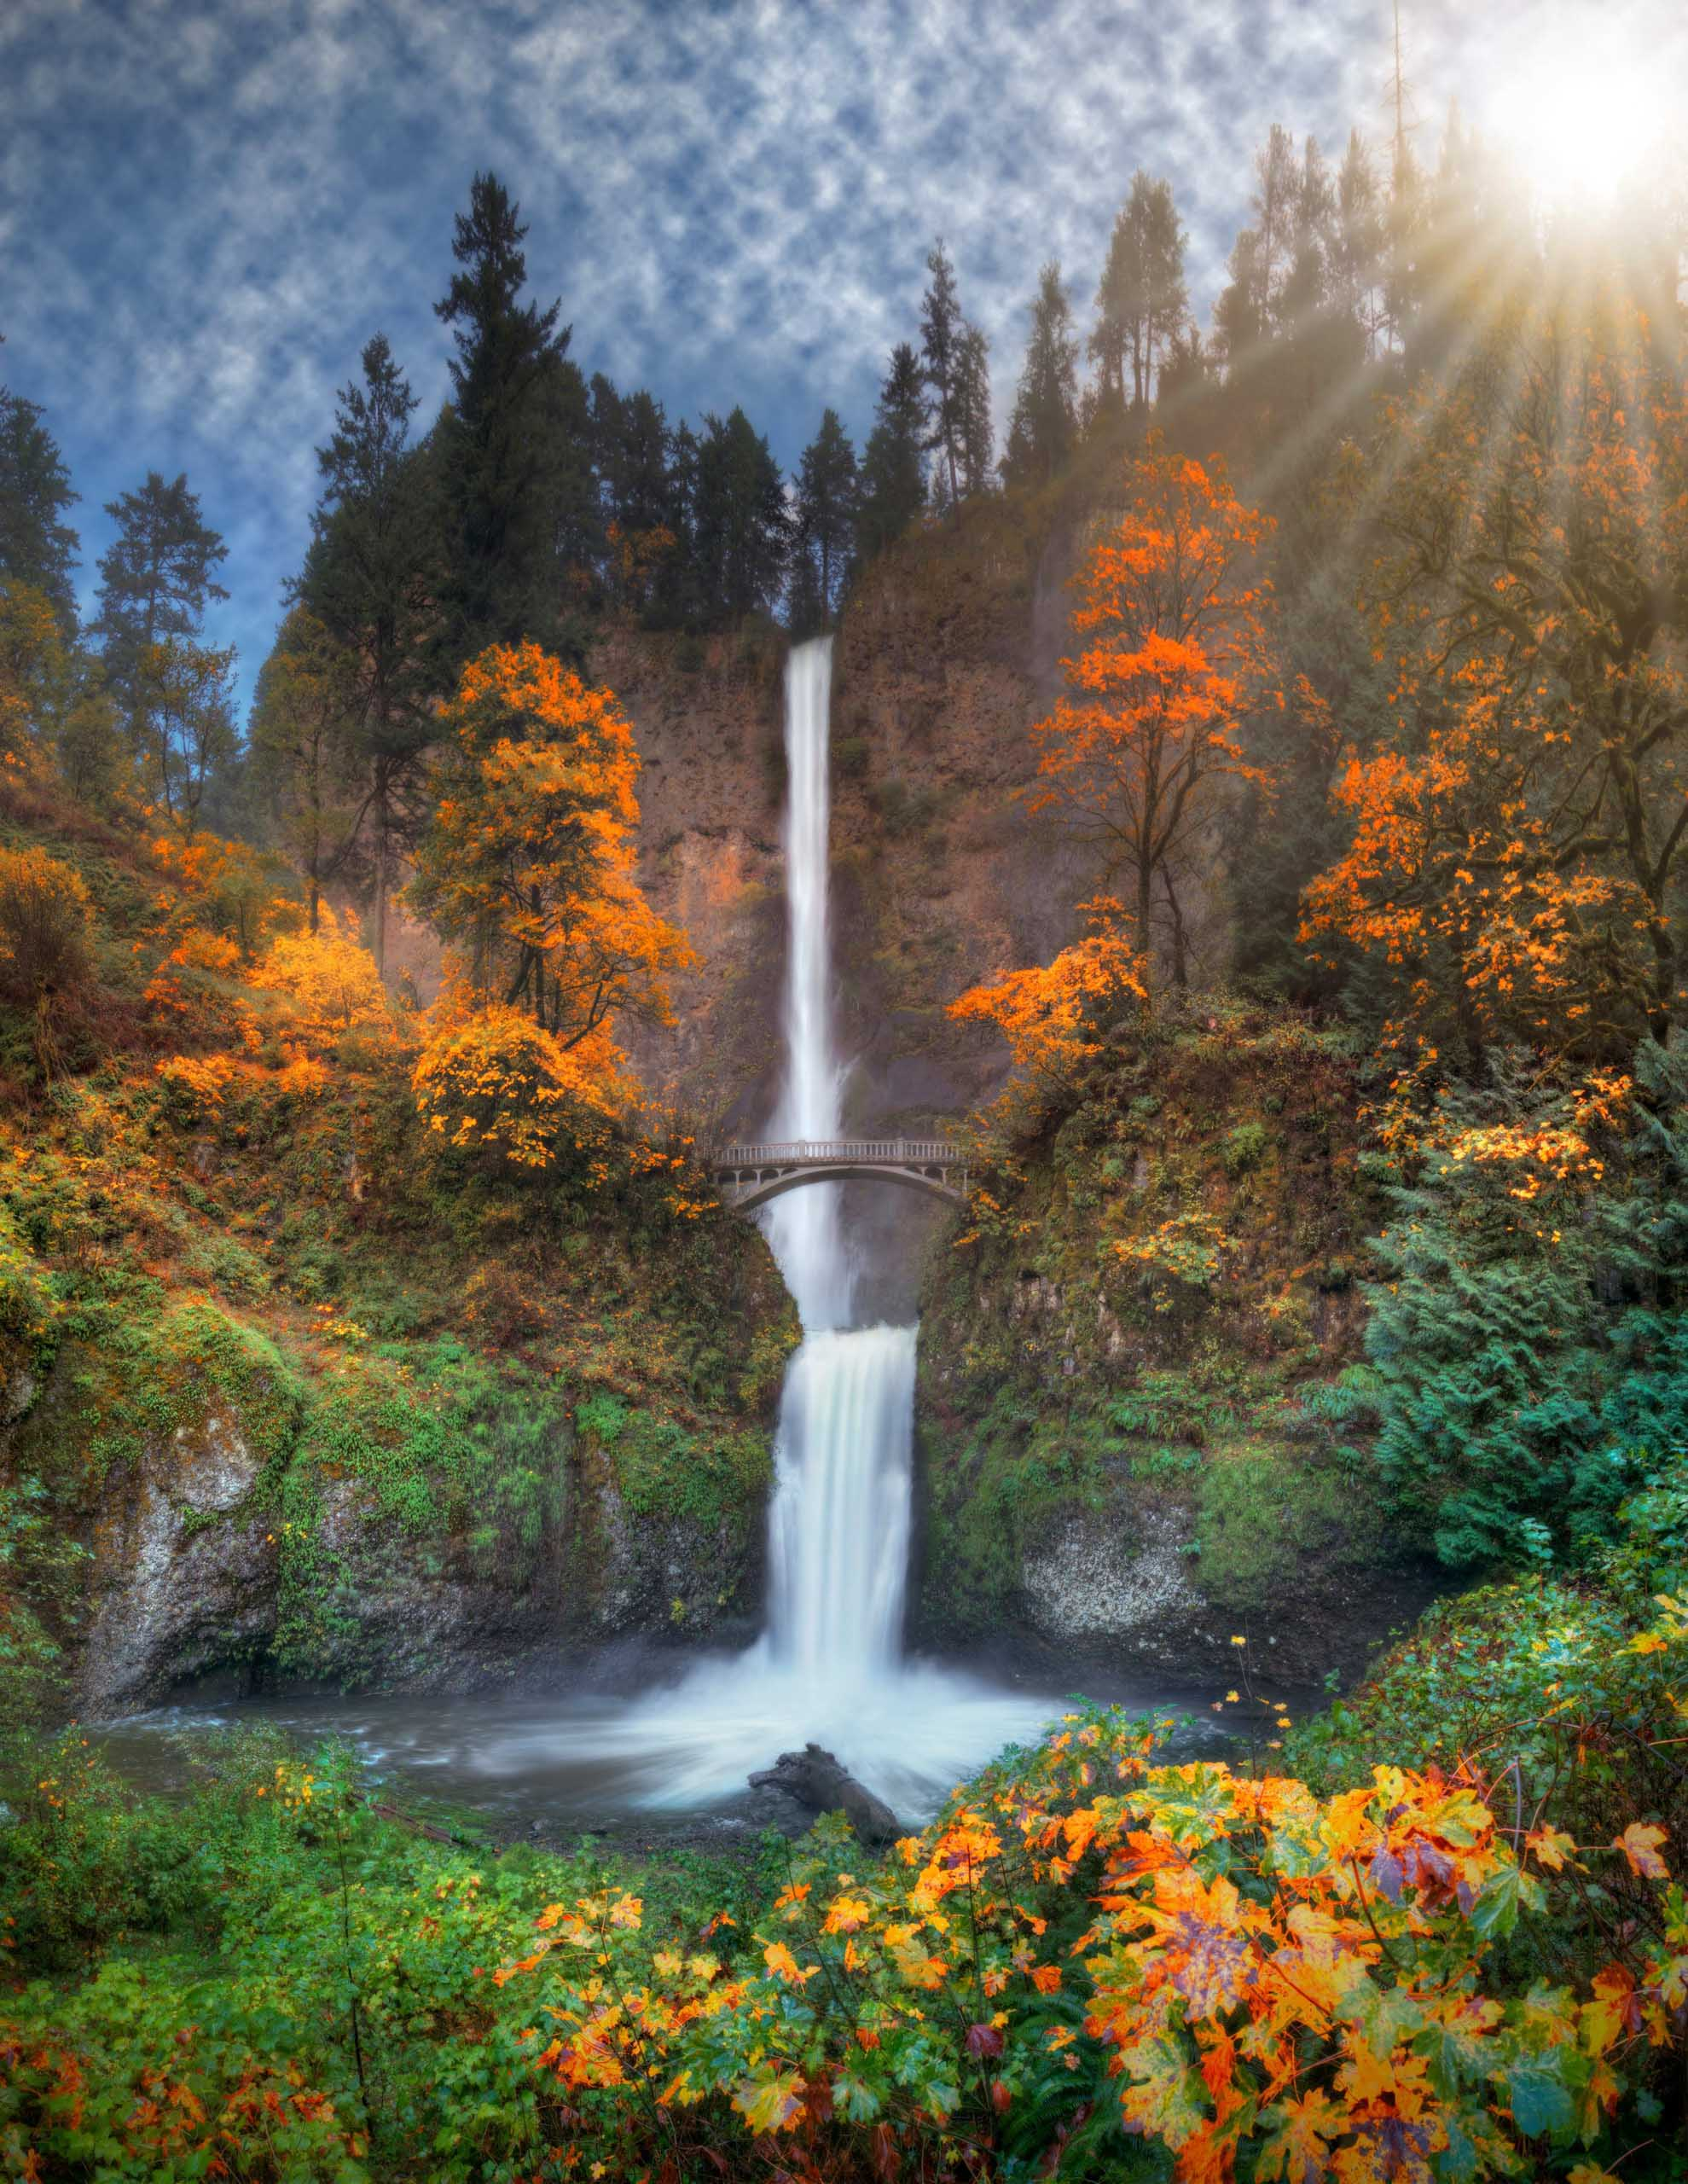 Multnomah Falls in Columbia River Gorge surrounded by fall foliage